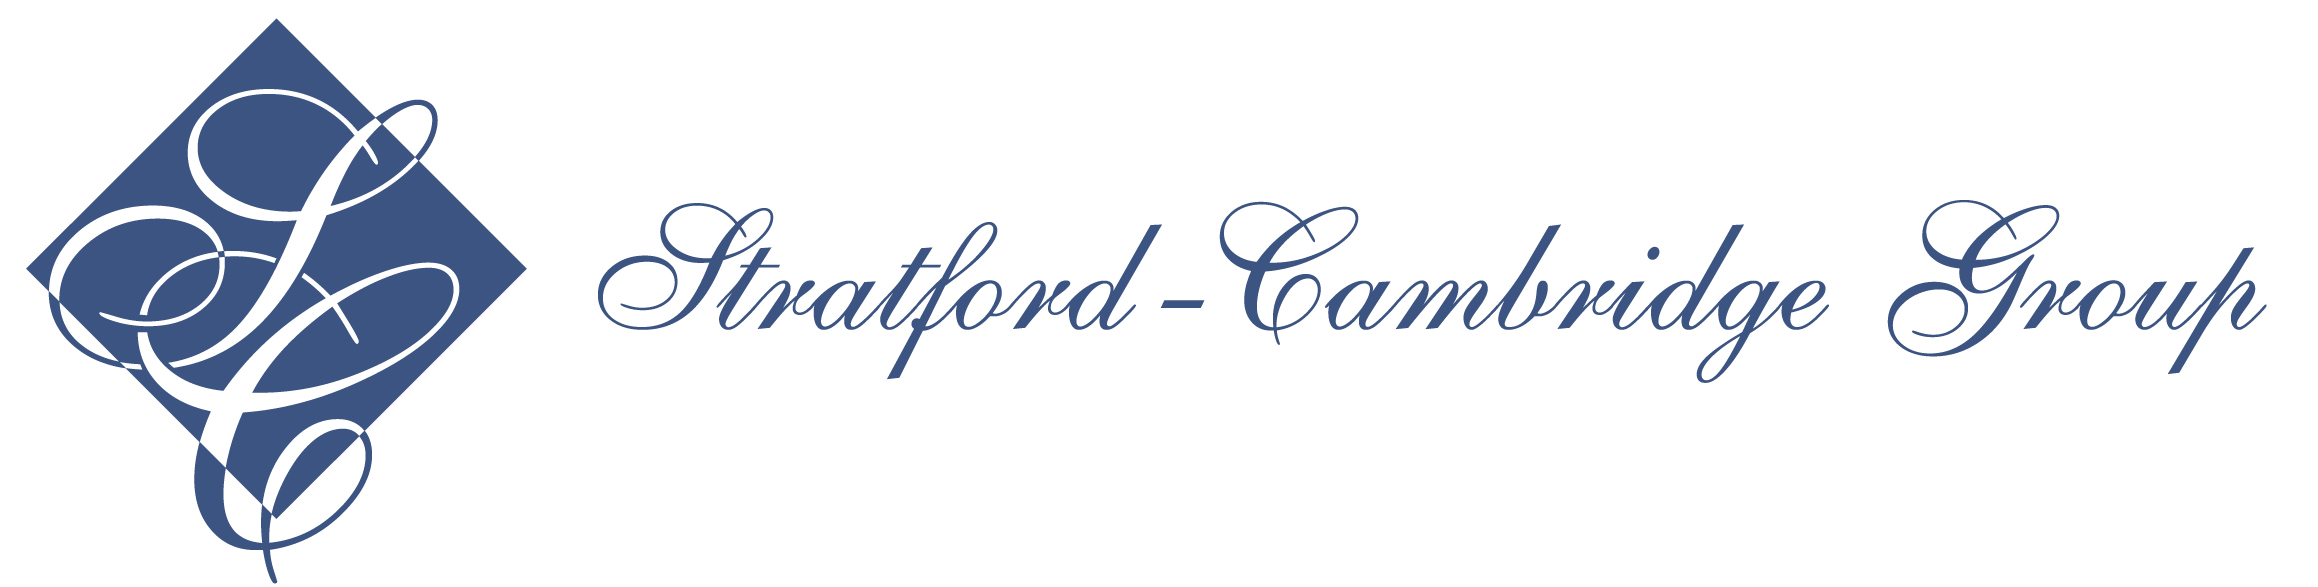 Stratford-Cambridge Group